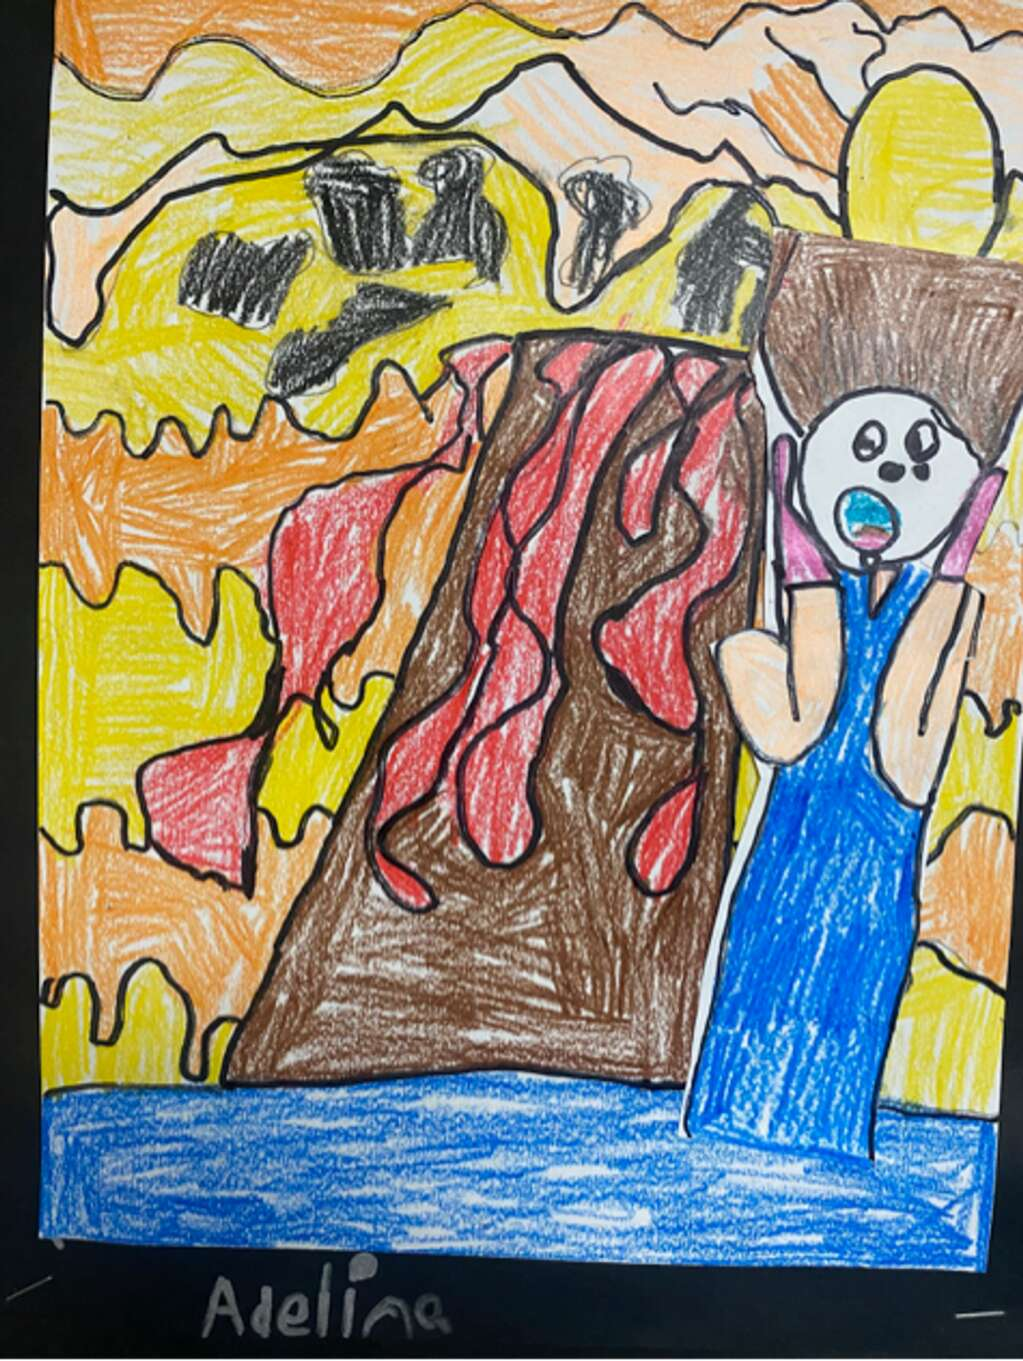 Produced by Adeline H. at Granby Elementary School. | Courtesy EGSD